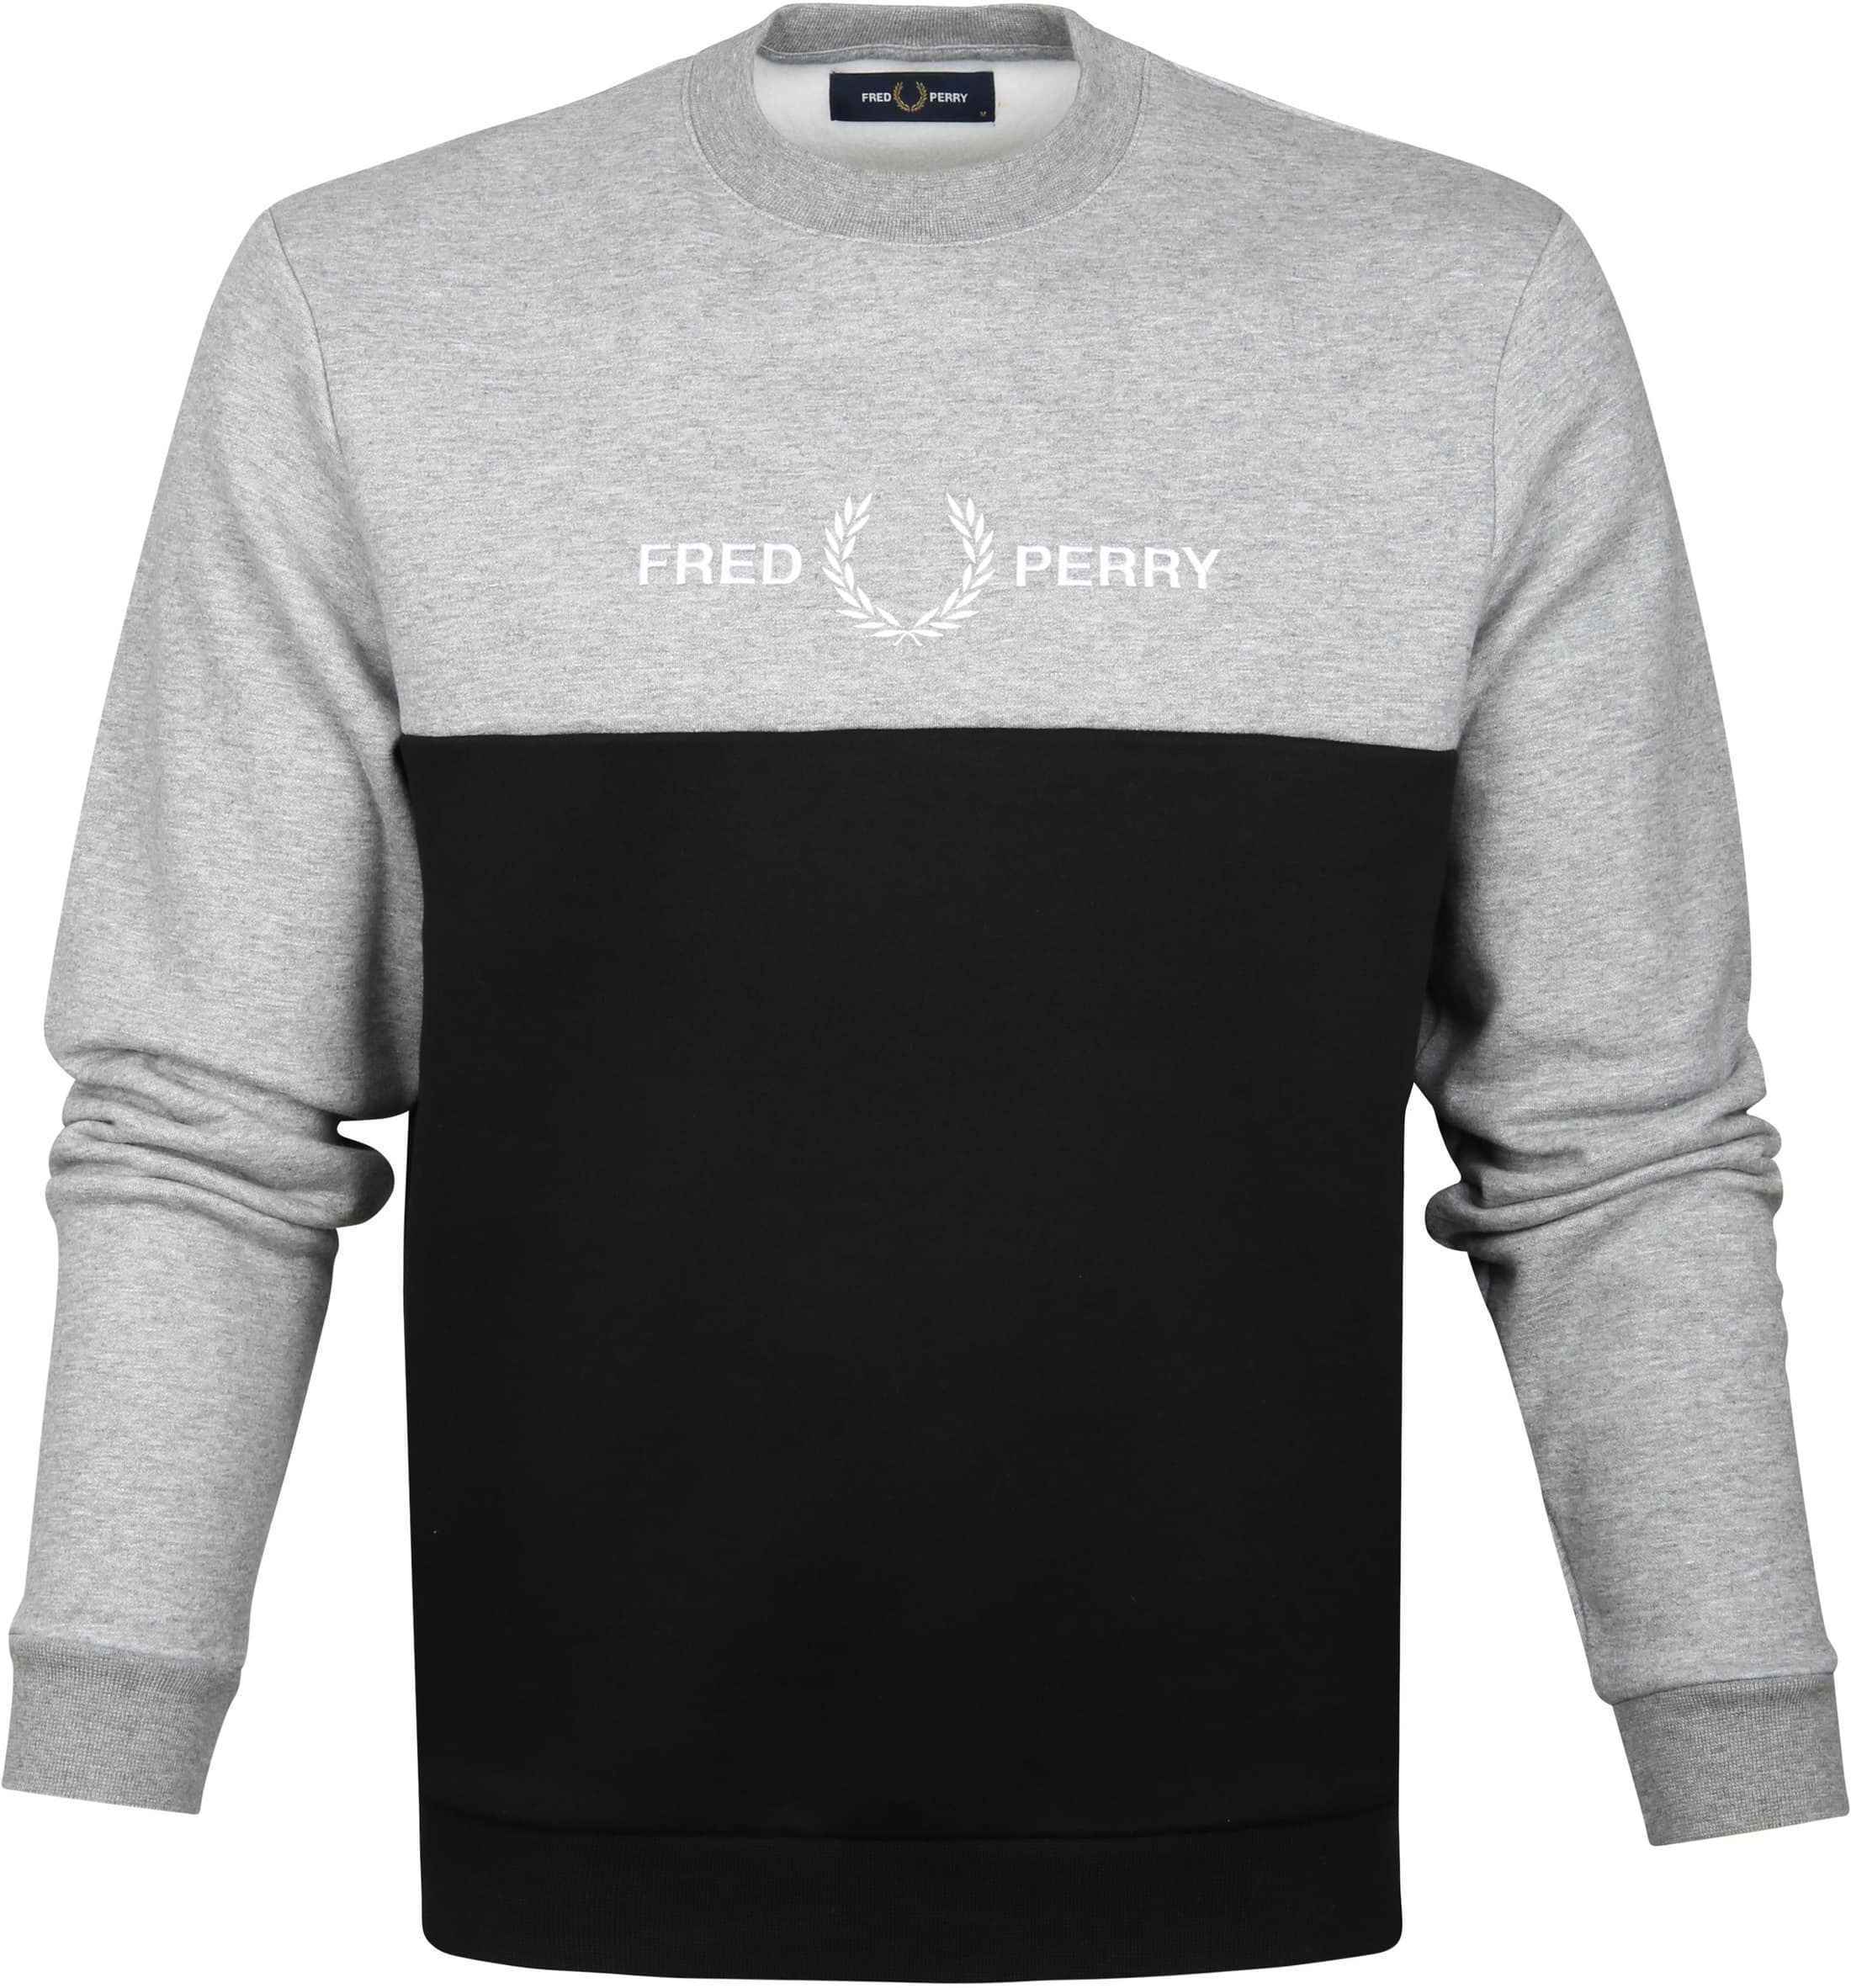 Fred Perry Sweater Grau Schwarz Logo foto 0